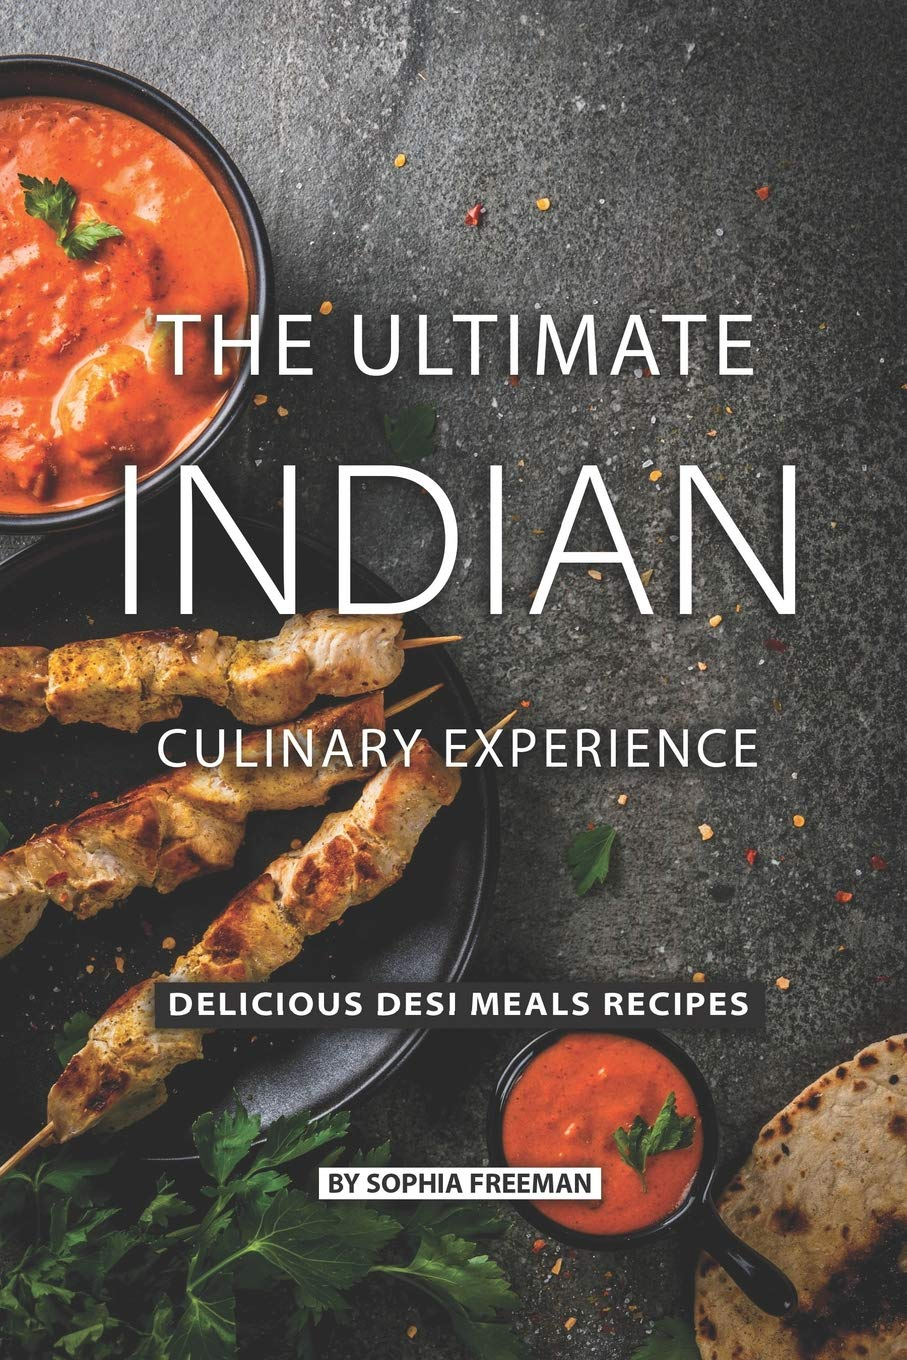 The Ultimate Indian Culinary Experience Delicious Desi